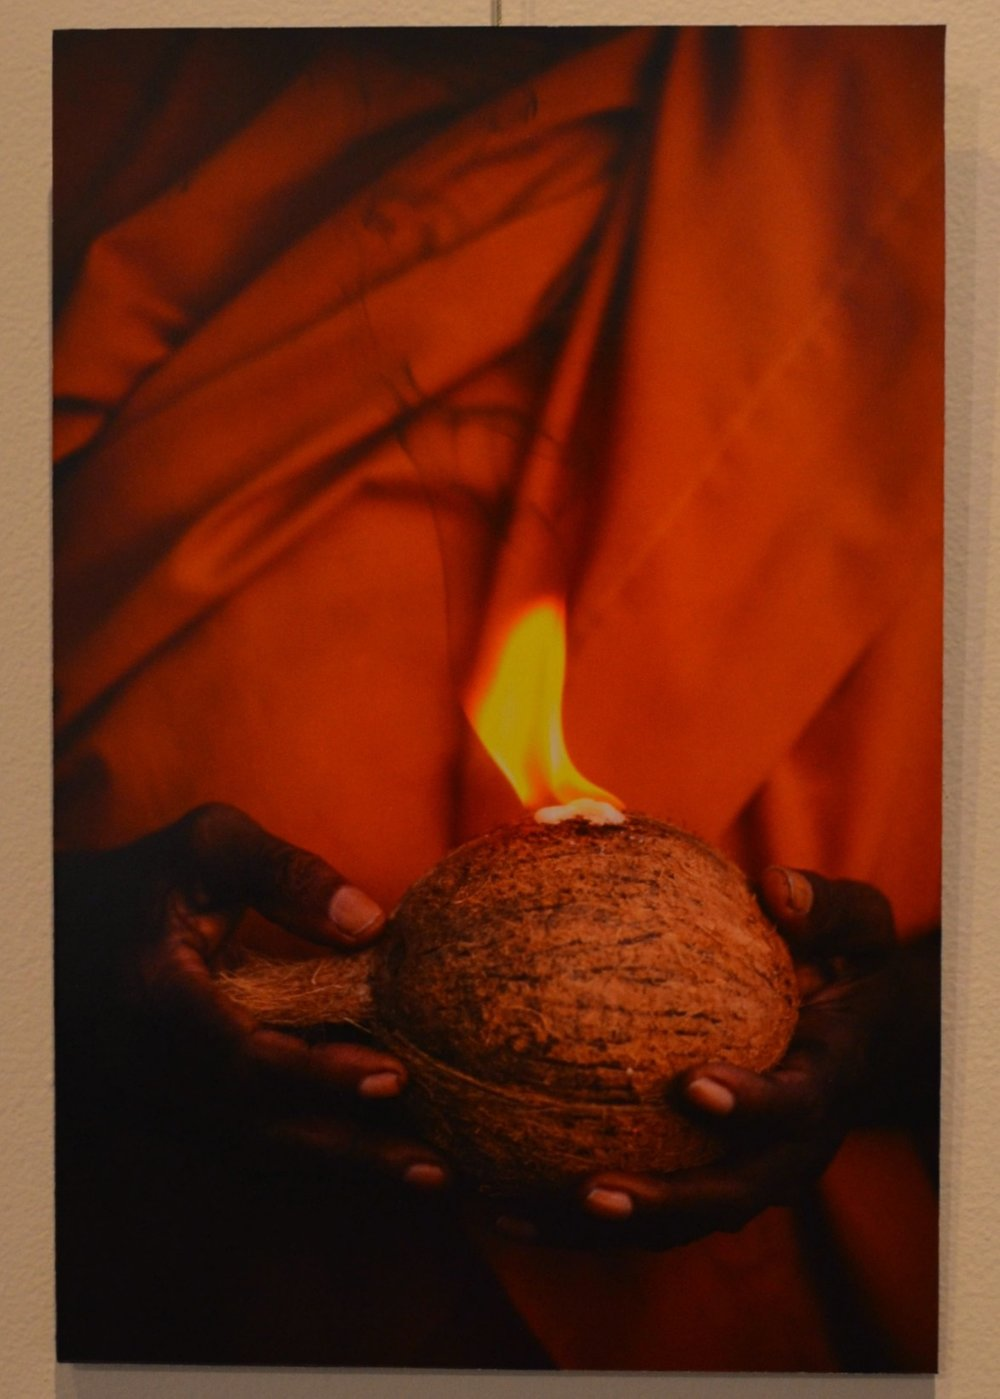 Buddhist nun holding a coconut and burning camphor at Kataragama. Photo: Dominic Sansoni